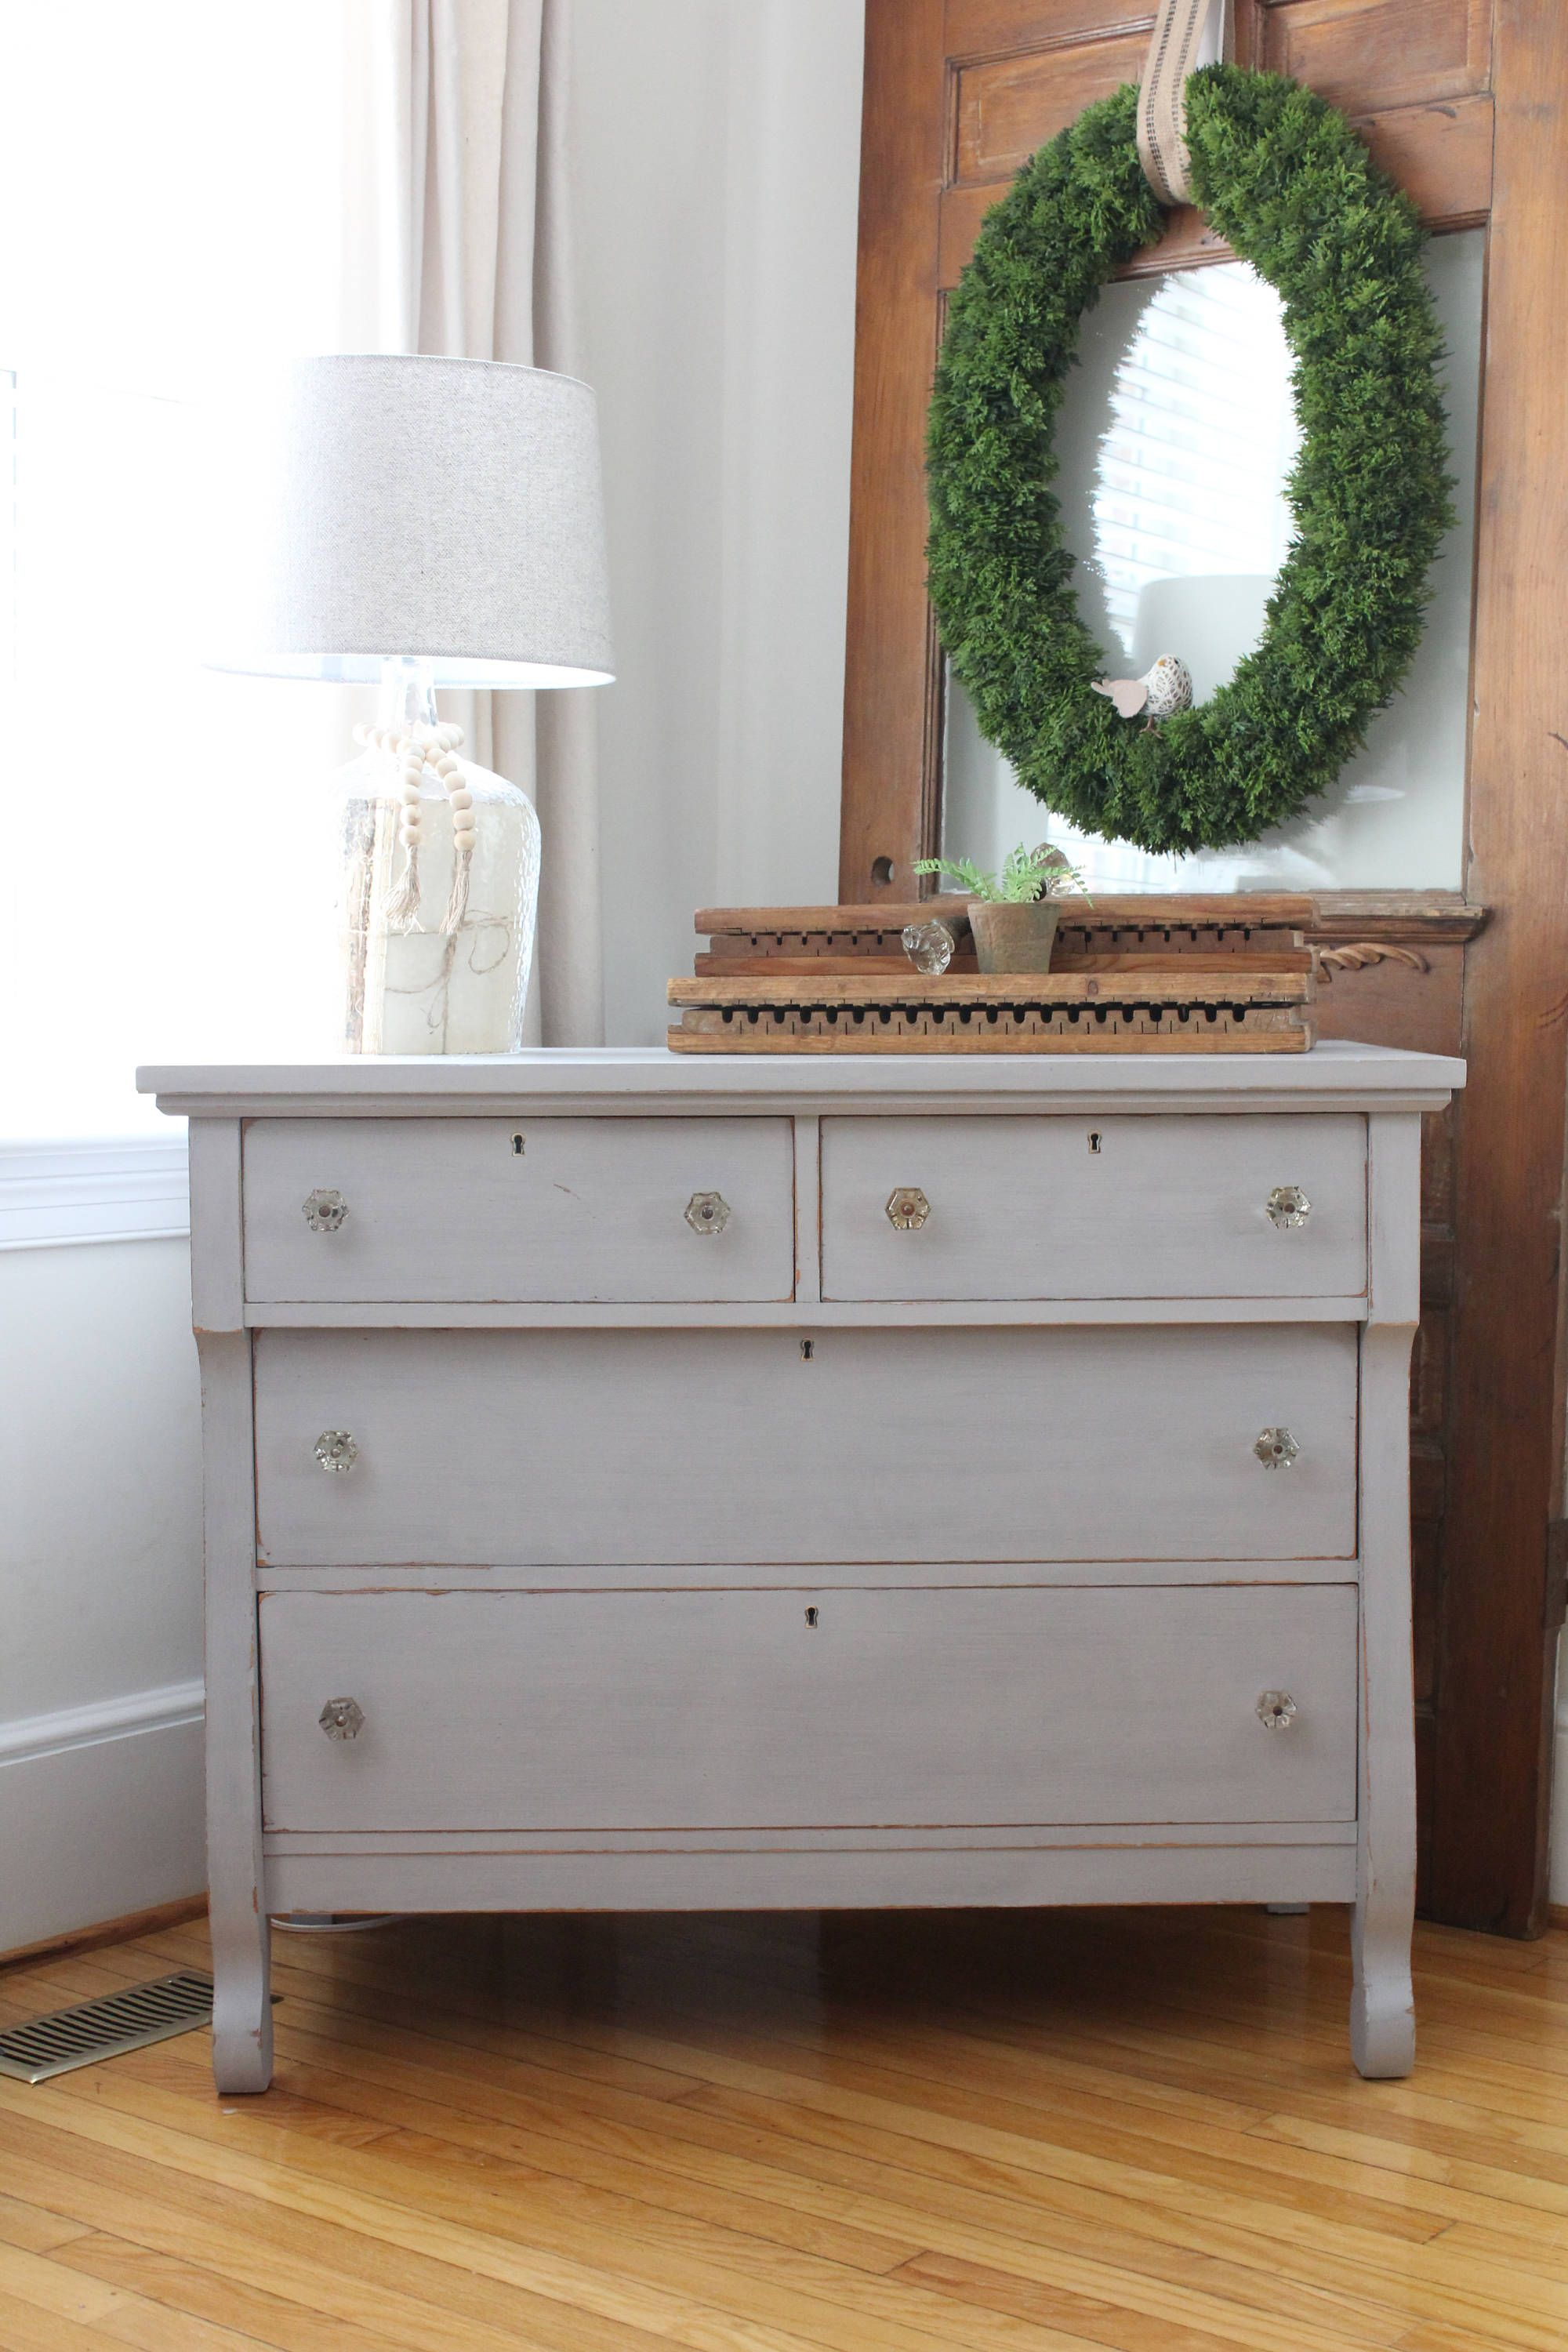 Vintage Empire Chest Of Drawers   Annie Sloan Chalk Paint   Paris Grey    Bedroom